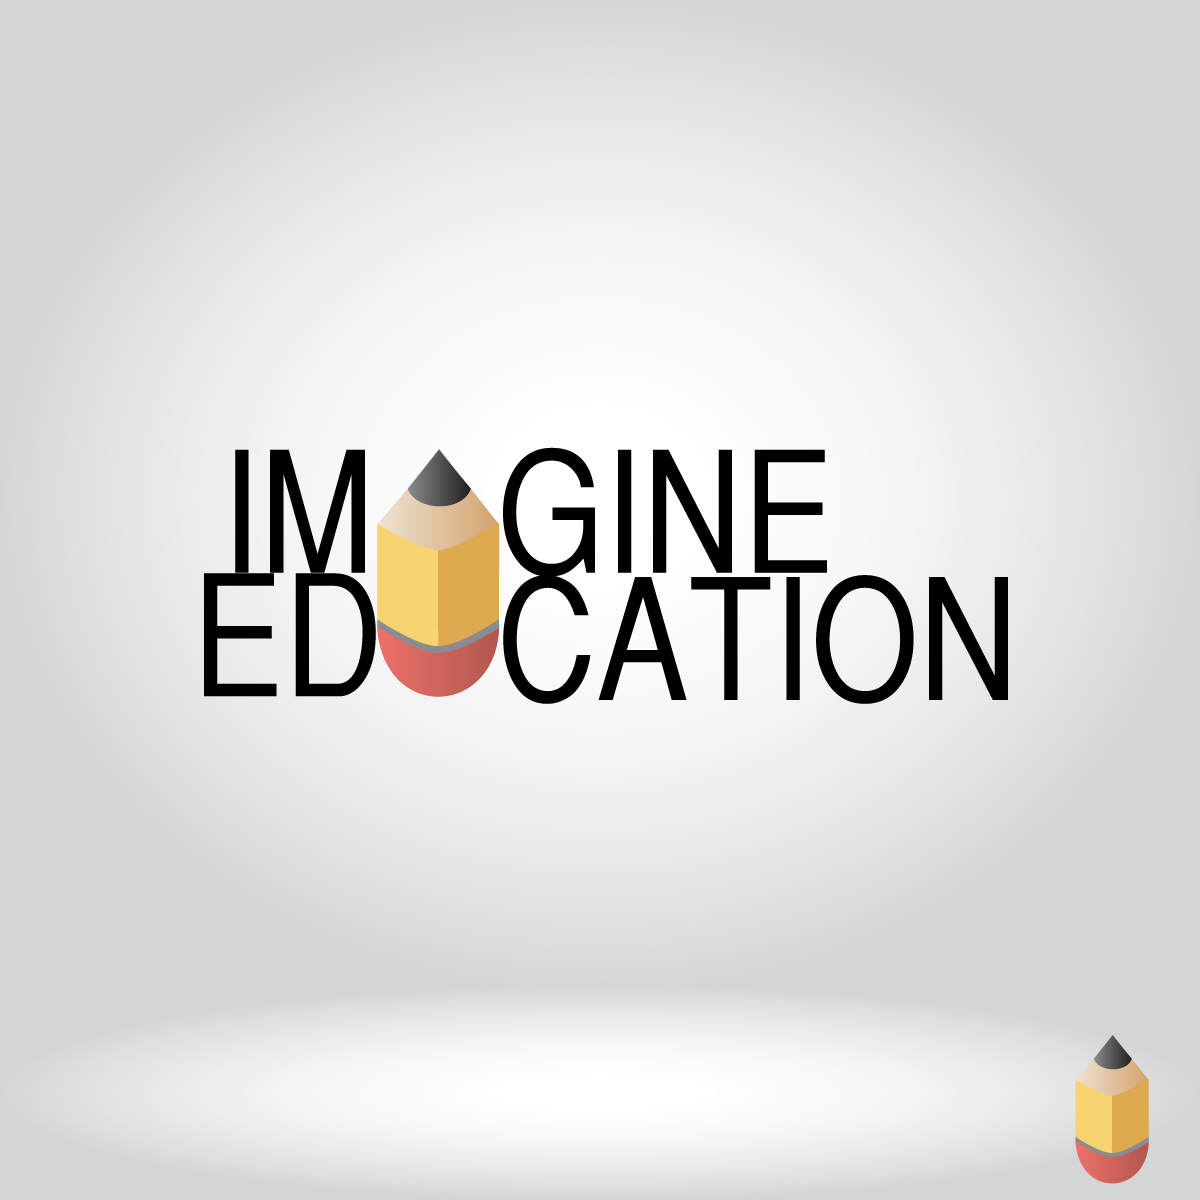 Logo Design by dottDesign - Entry No. 133 in the Logo Design Contest Imagine Education.